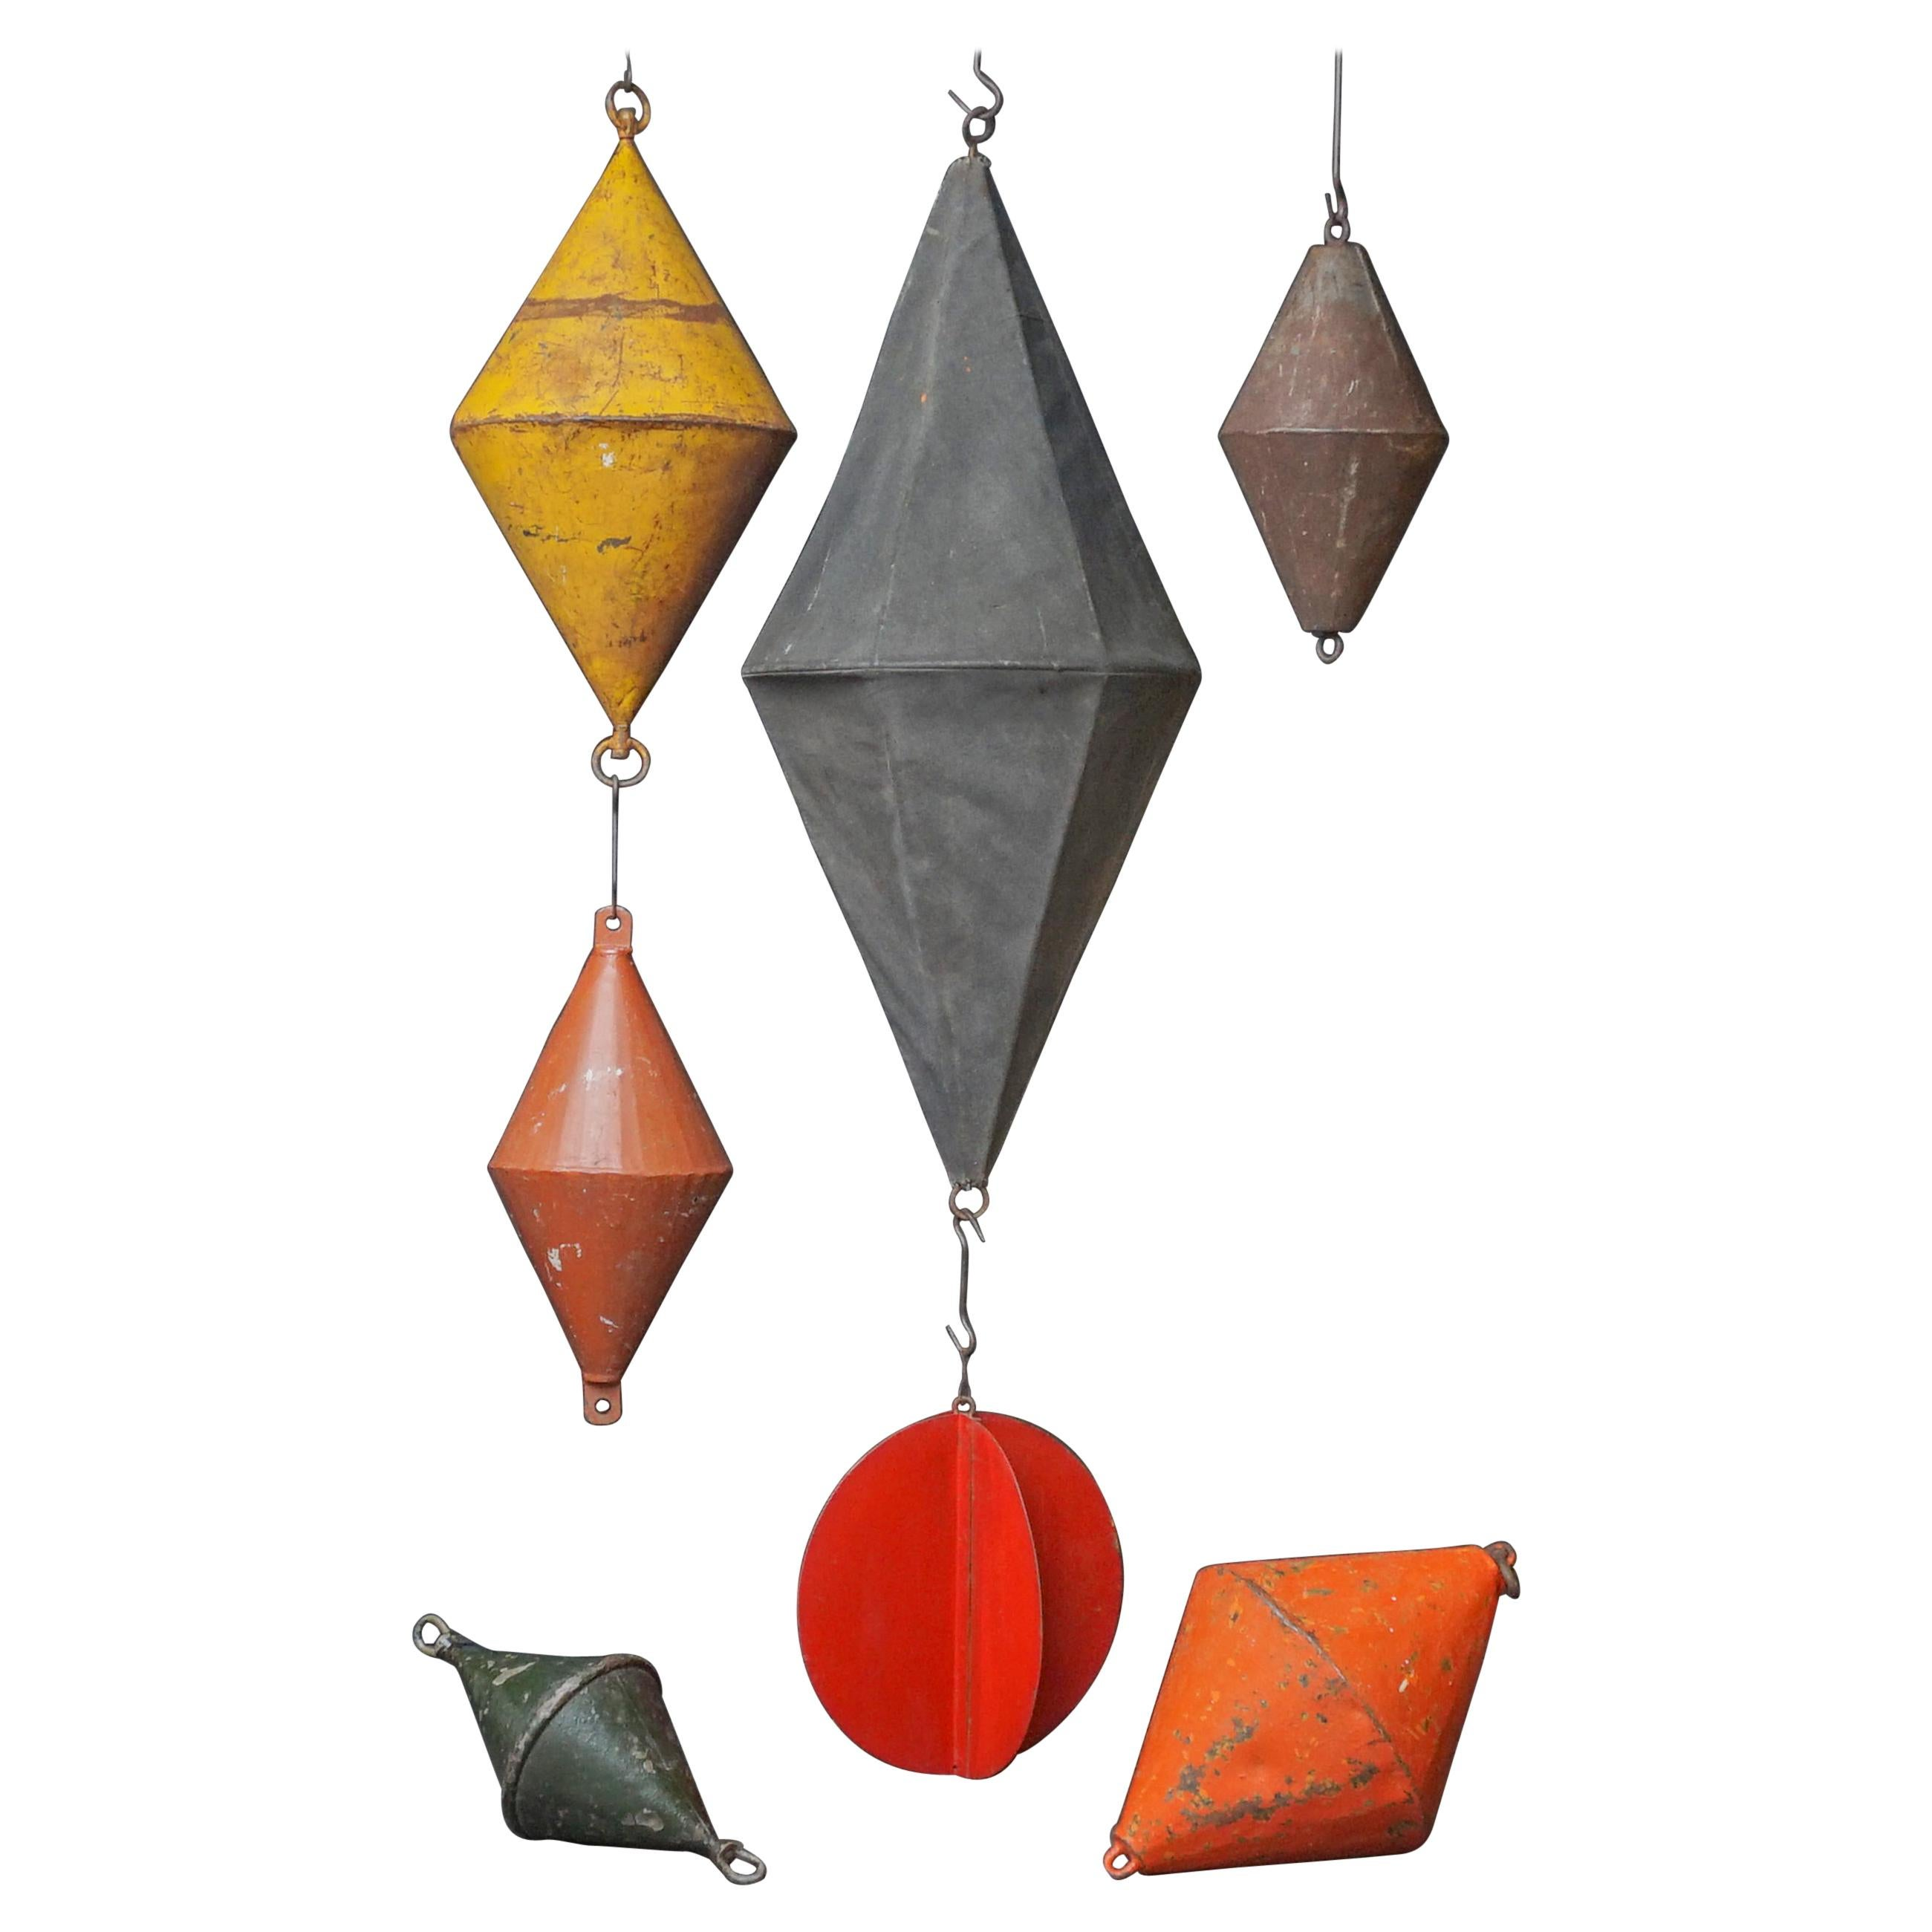 Seven Early 20th Century Dutch Marine Canvas Signal Day Shapes and Metal Buoys